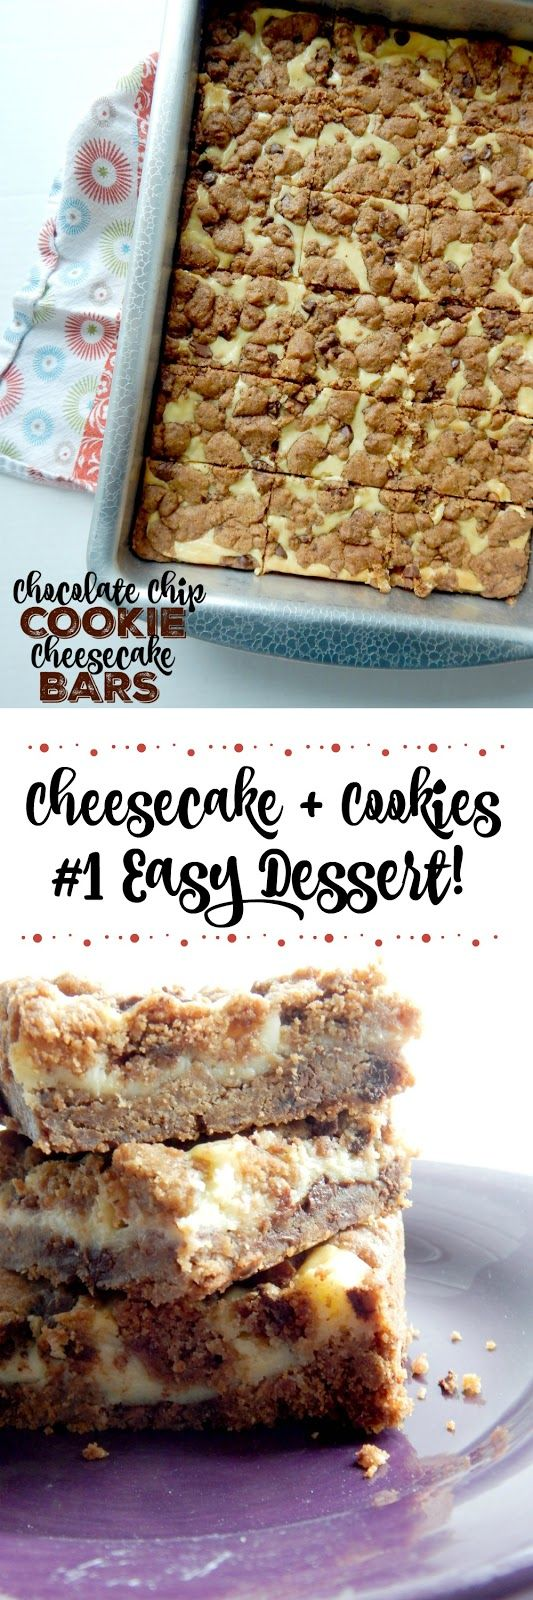 Chocolate Chip Cookie Cheesecake Bars...for those that love chocolate chip cookies AND love cheesecake! Crispy on the cookie edges with a creamy middle cheesecake layer. The perfect bar dessert!